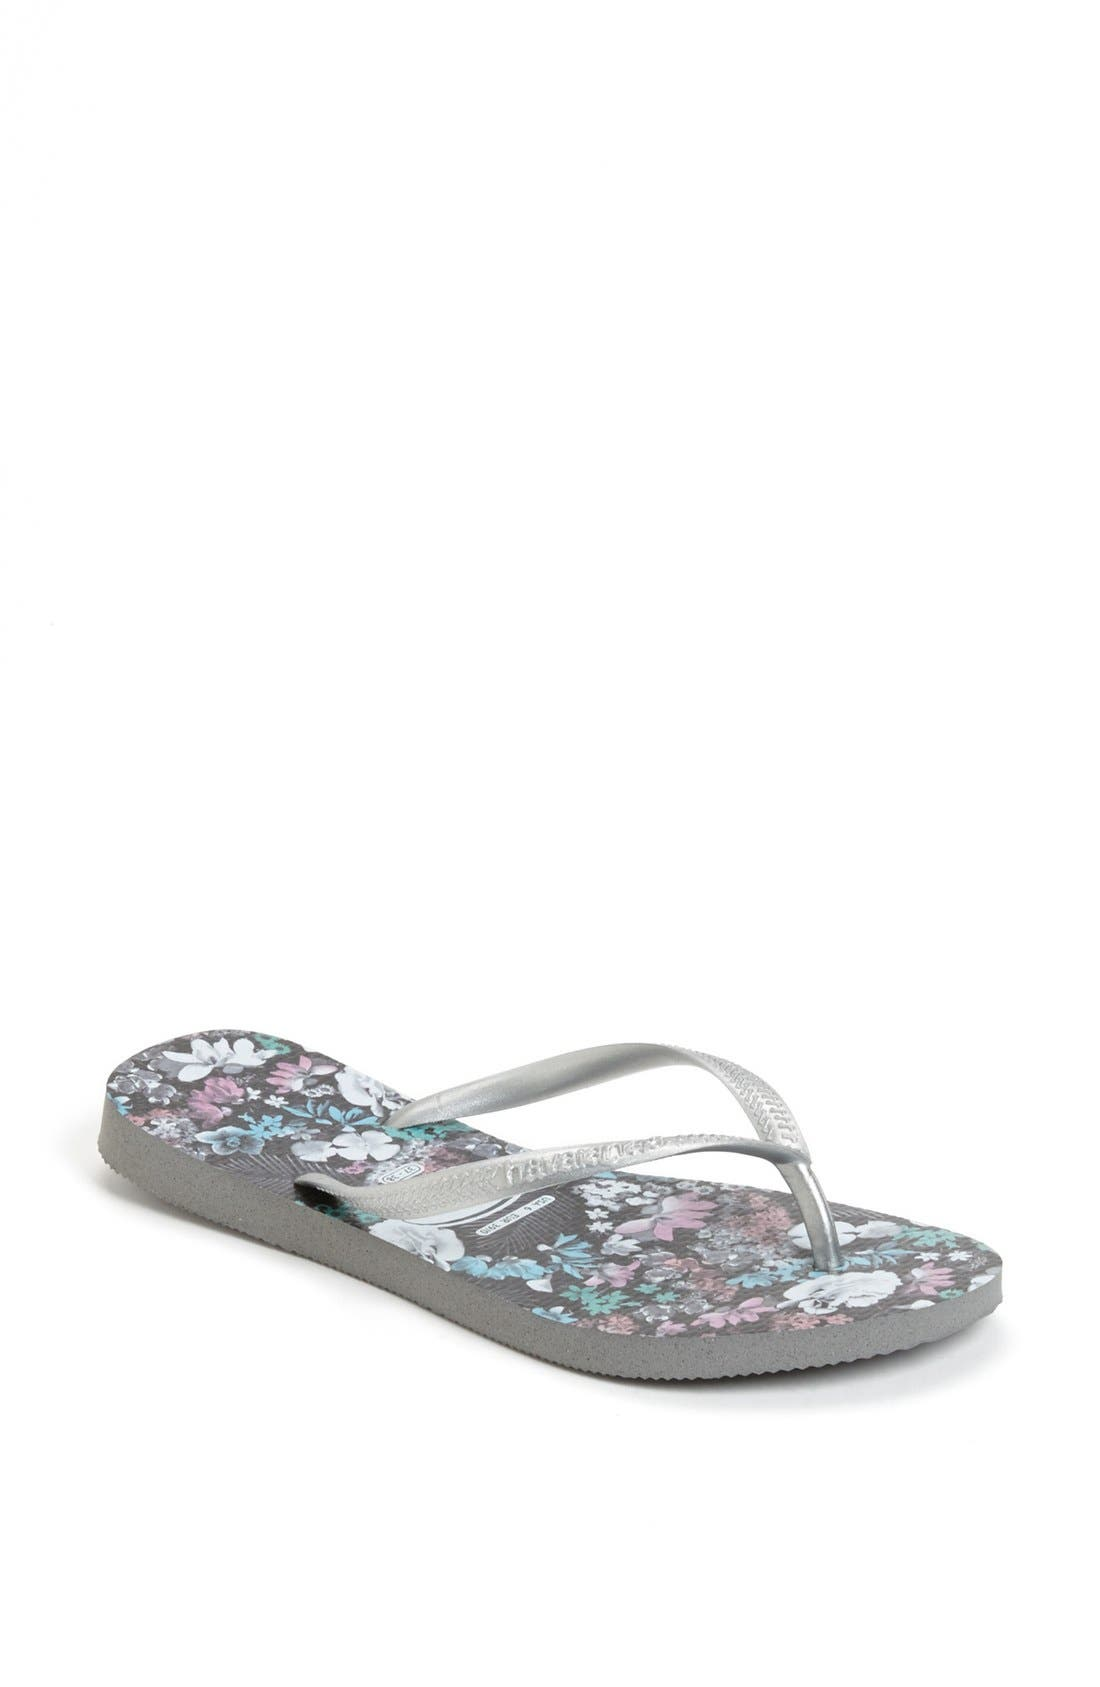 Alternate Image 1 Selected - Havaianas 'Slim Floral' Flip Flop (Women)